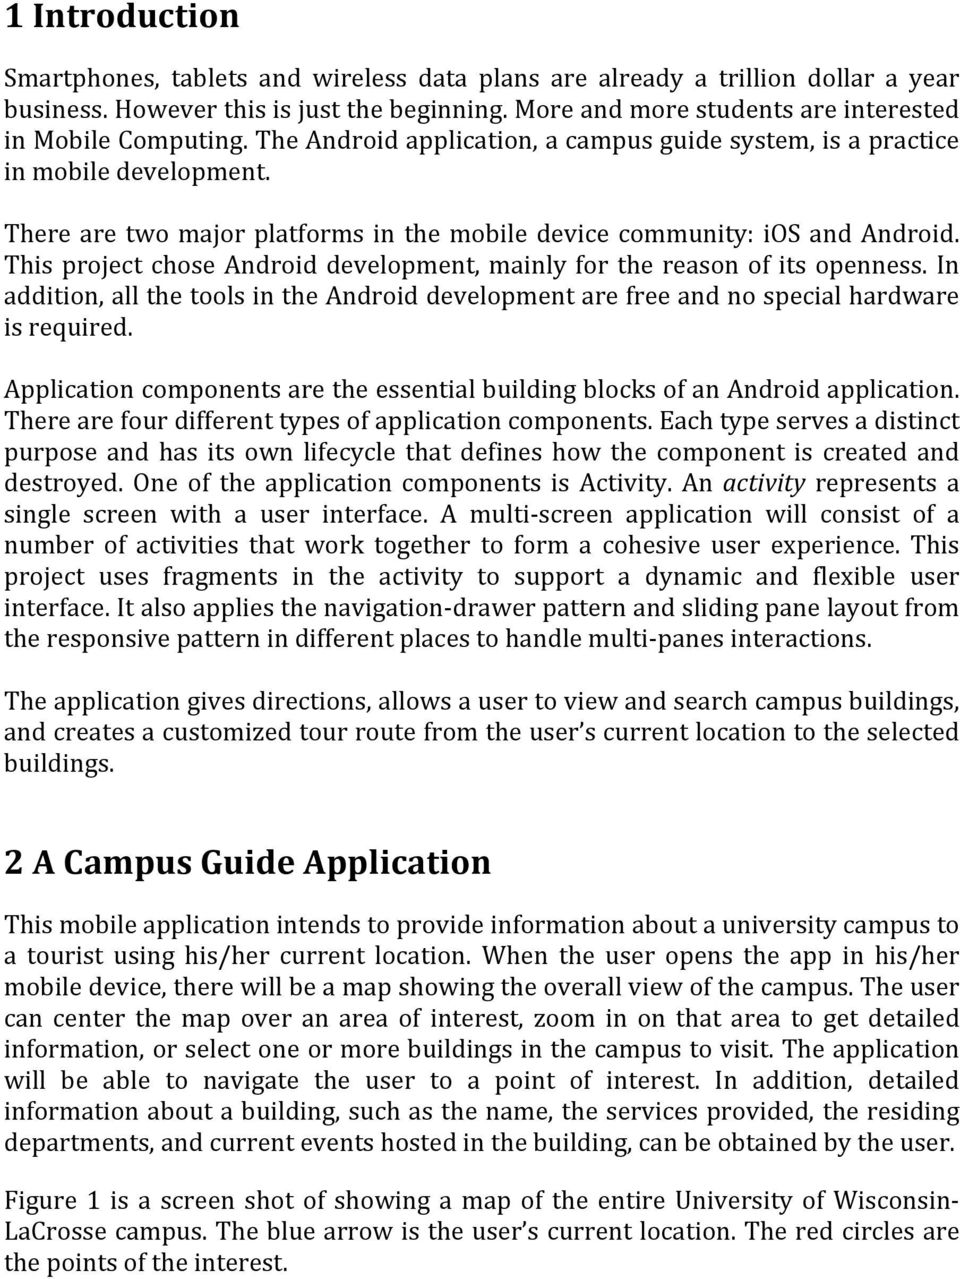 Using Android Fragments in A Campus Guide System - PDF